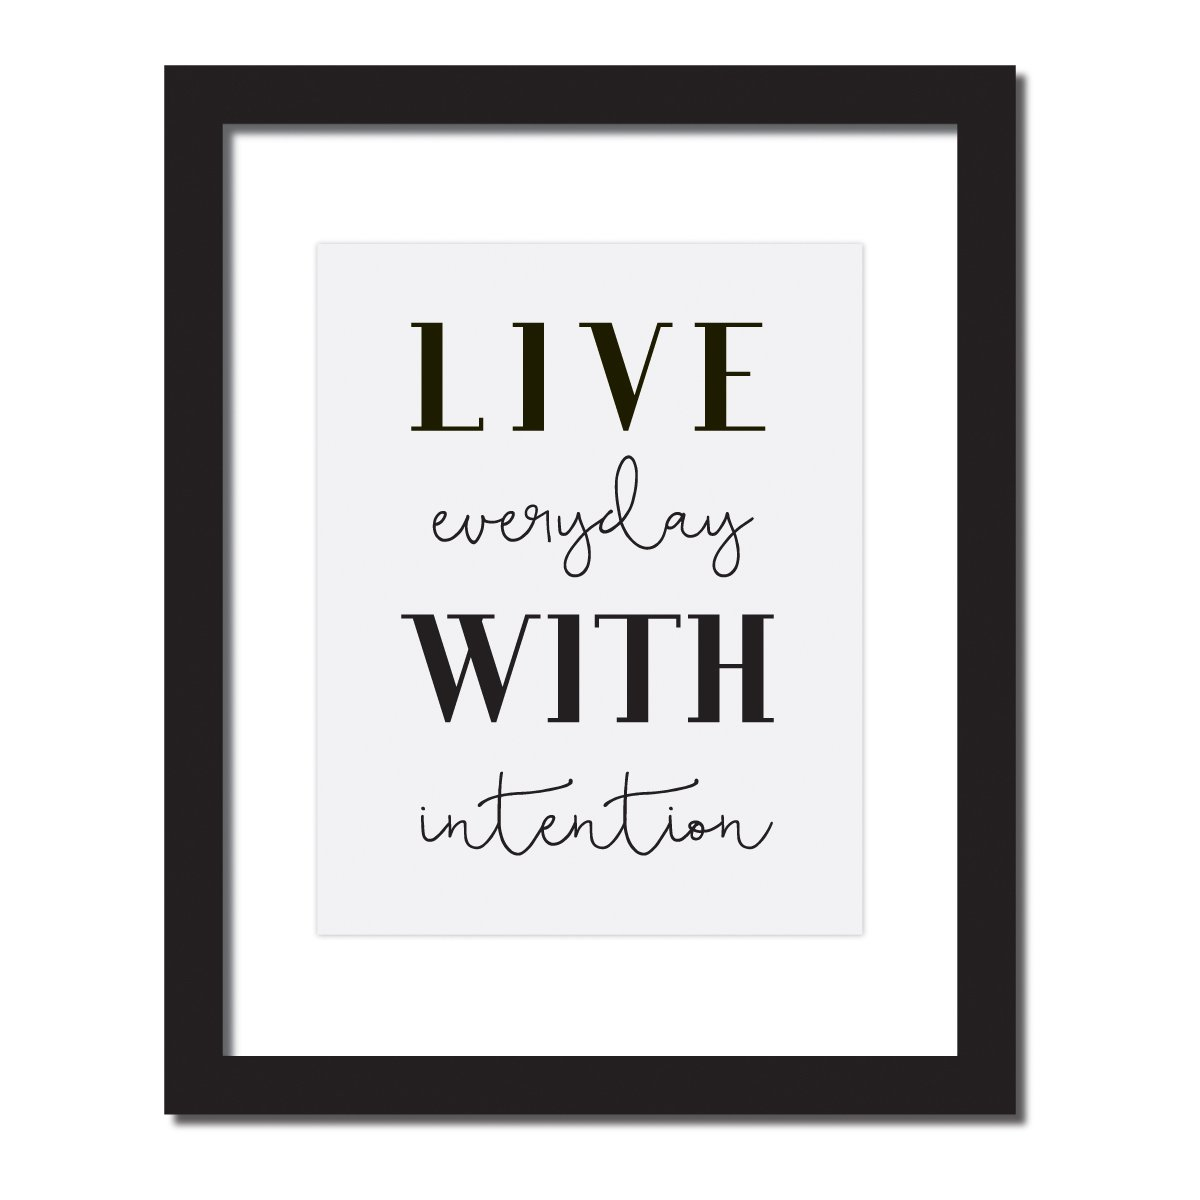 'Live Everyday With Intention' Inspirational Quote Print . UNFRAMED. by Craft Street Design